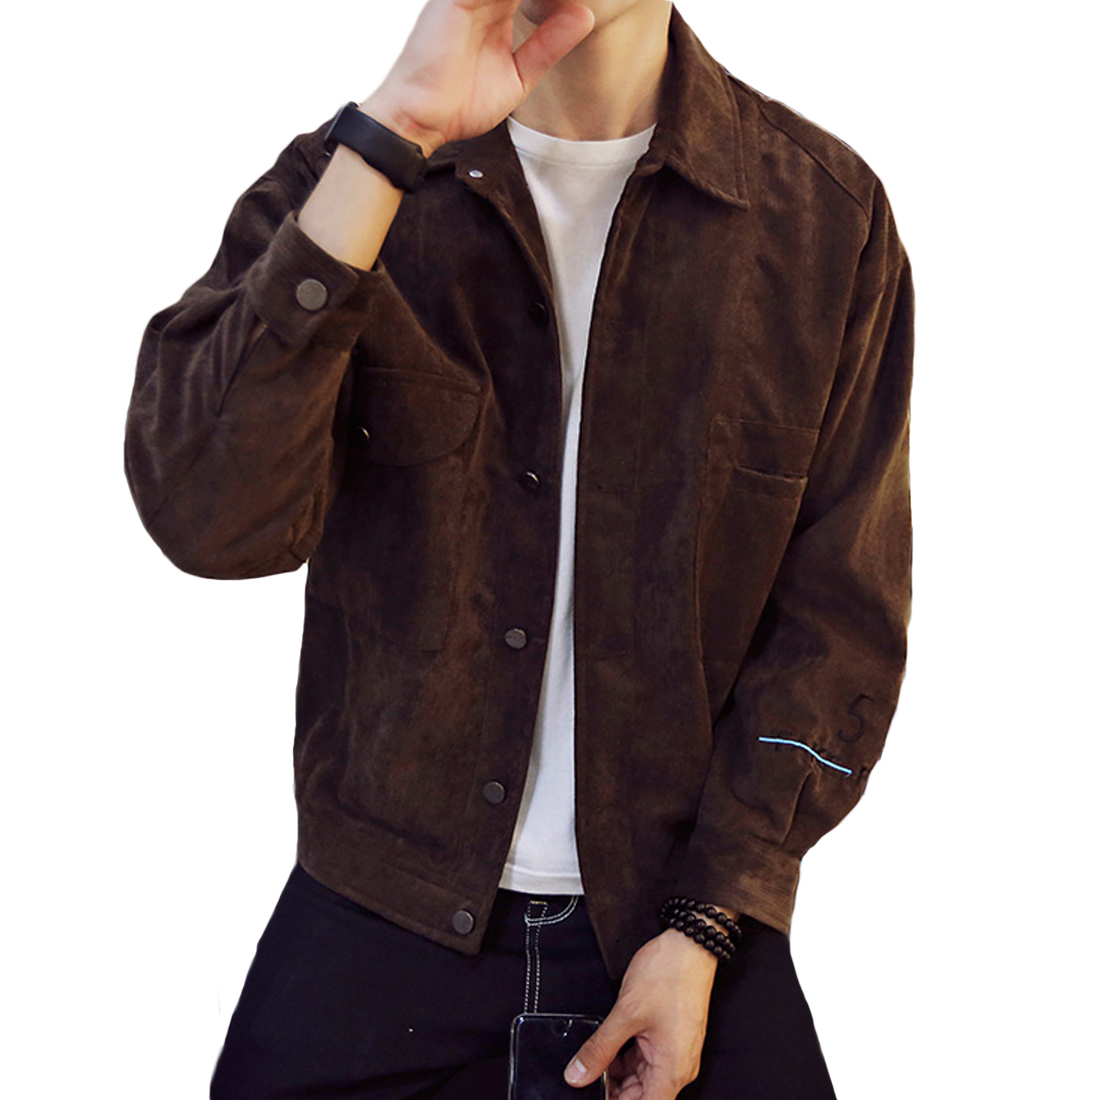 Shop for and buy corduroy jacket online at Macy's. Find corduroy jacket at Macy's.